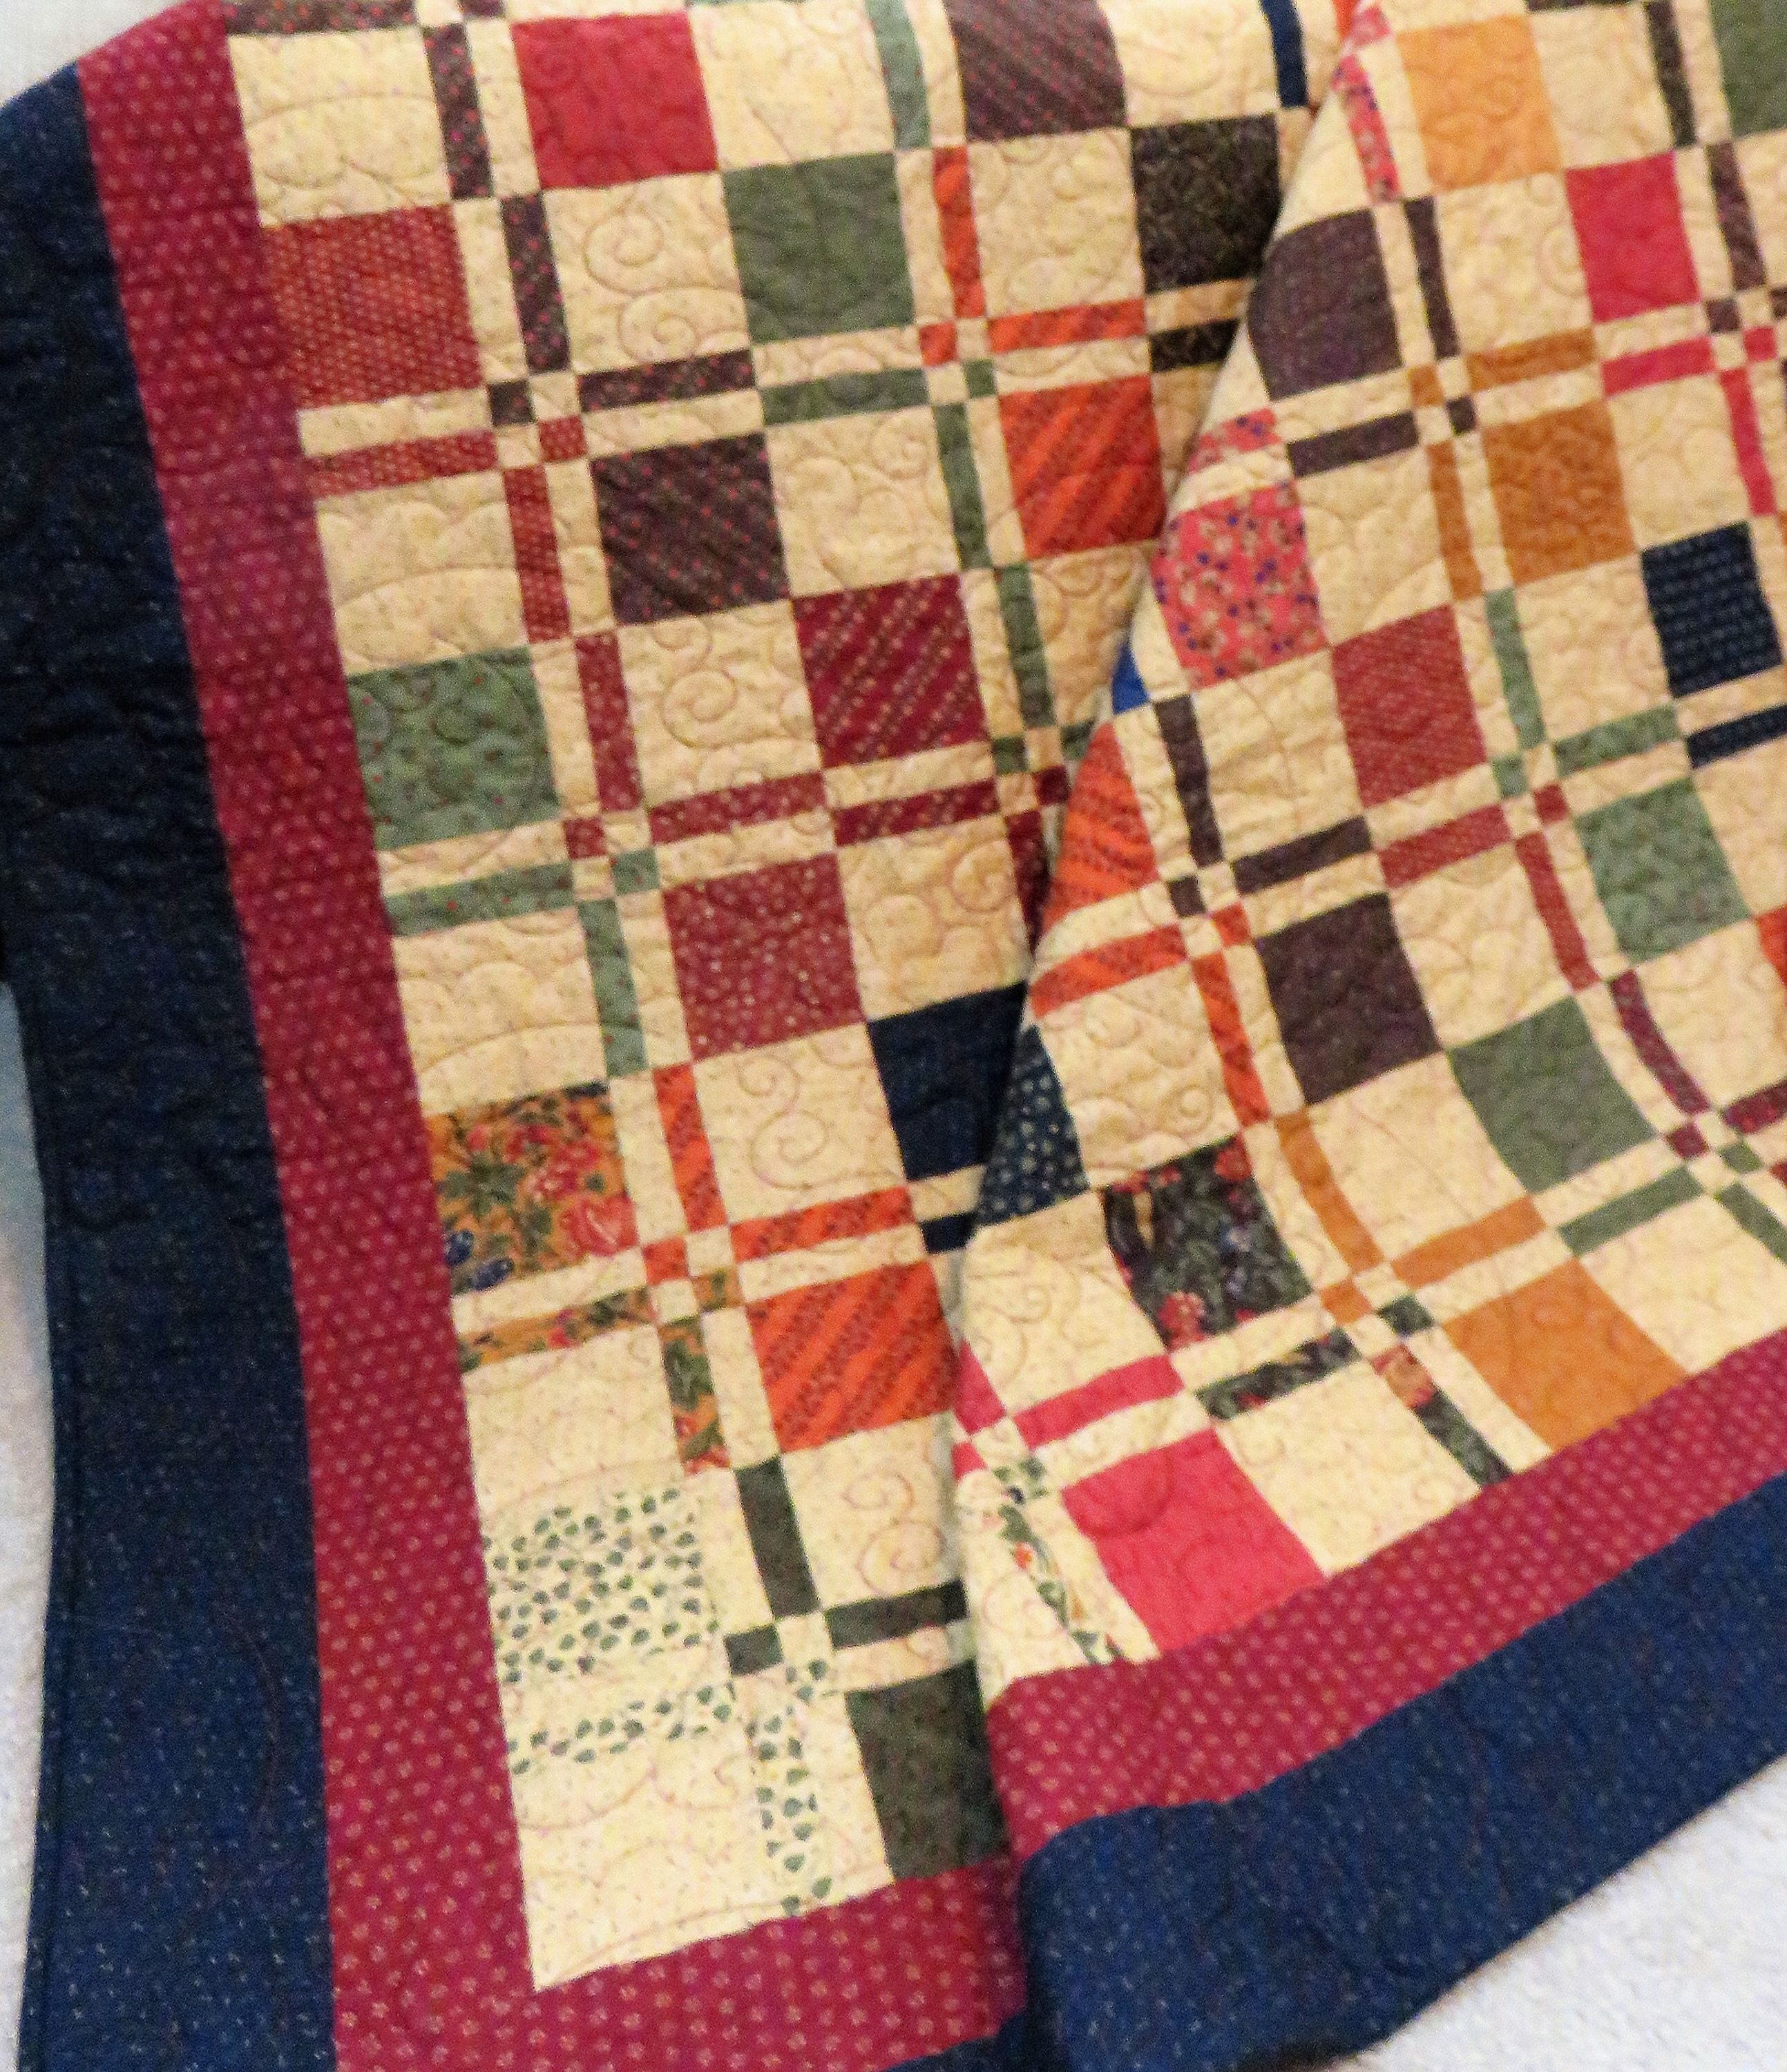 Handmade Quilt For Sale Twin Size Quilt Full Size Coverlet Etsy Handmade Quilts For Sale Throw Quilt Handmade Quilts